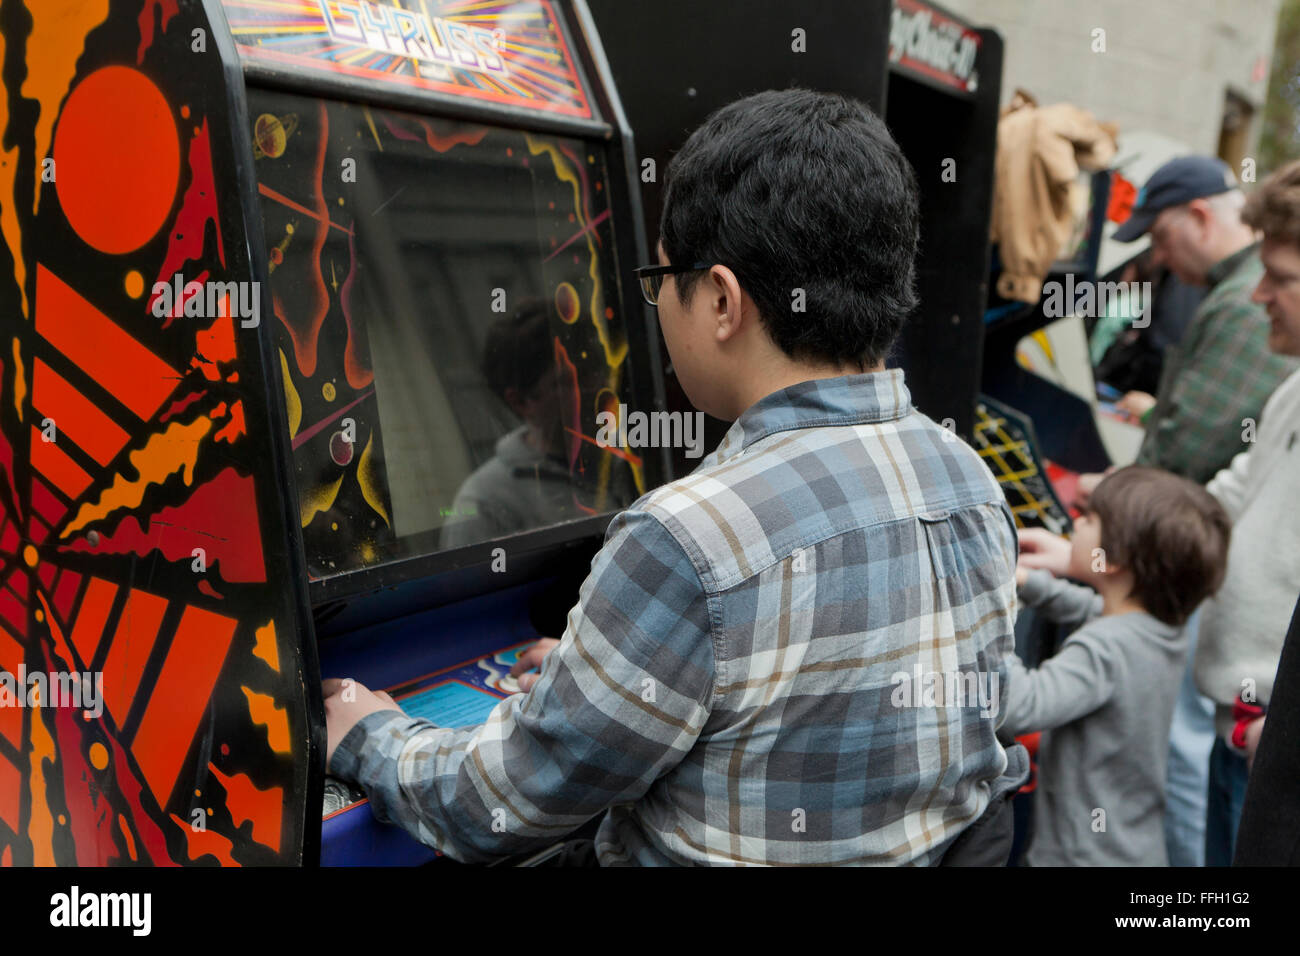 Young man playing arcade video game - USA - Stock Image